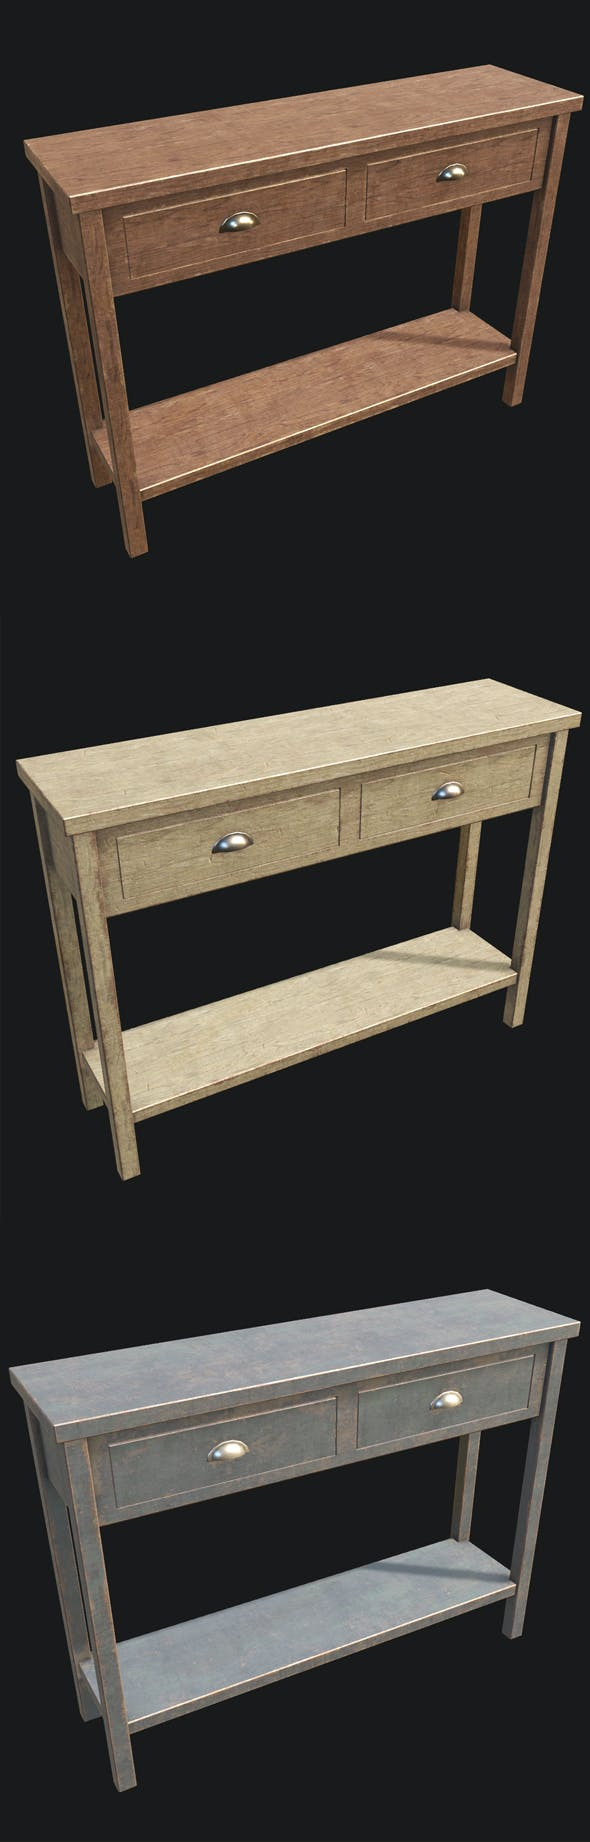 End Table 02 PBR - 3DOcean Item for Sale